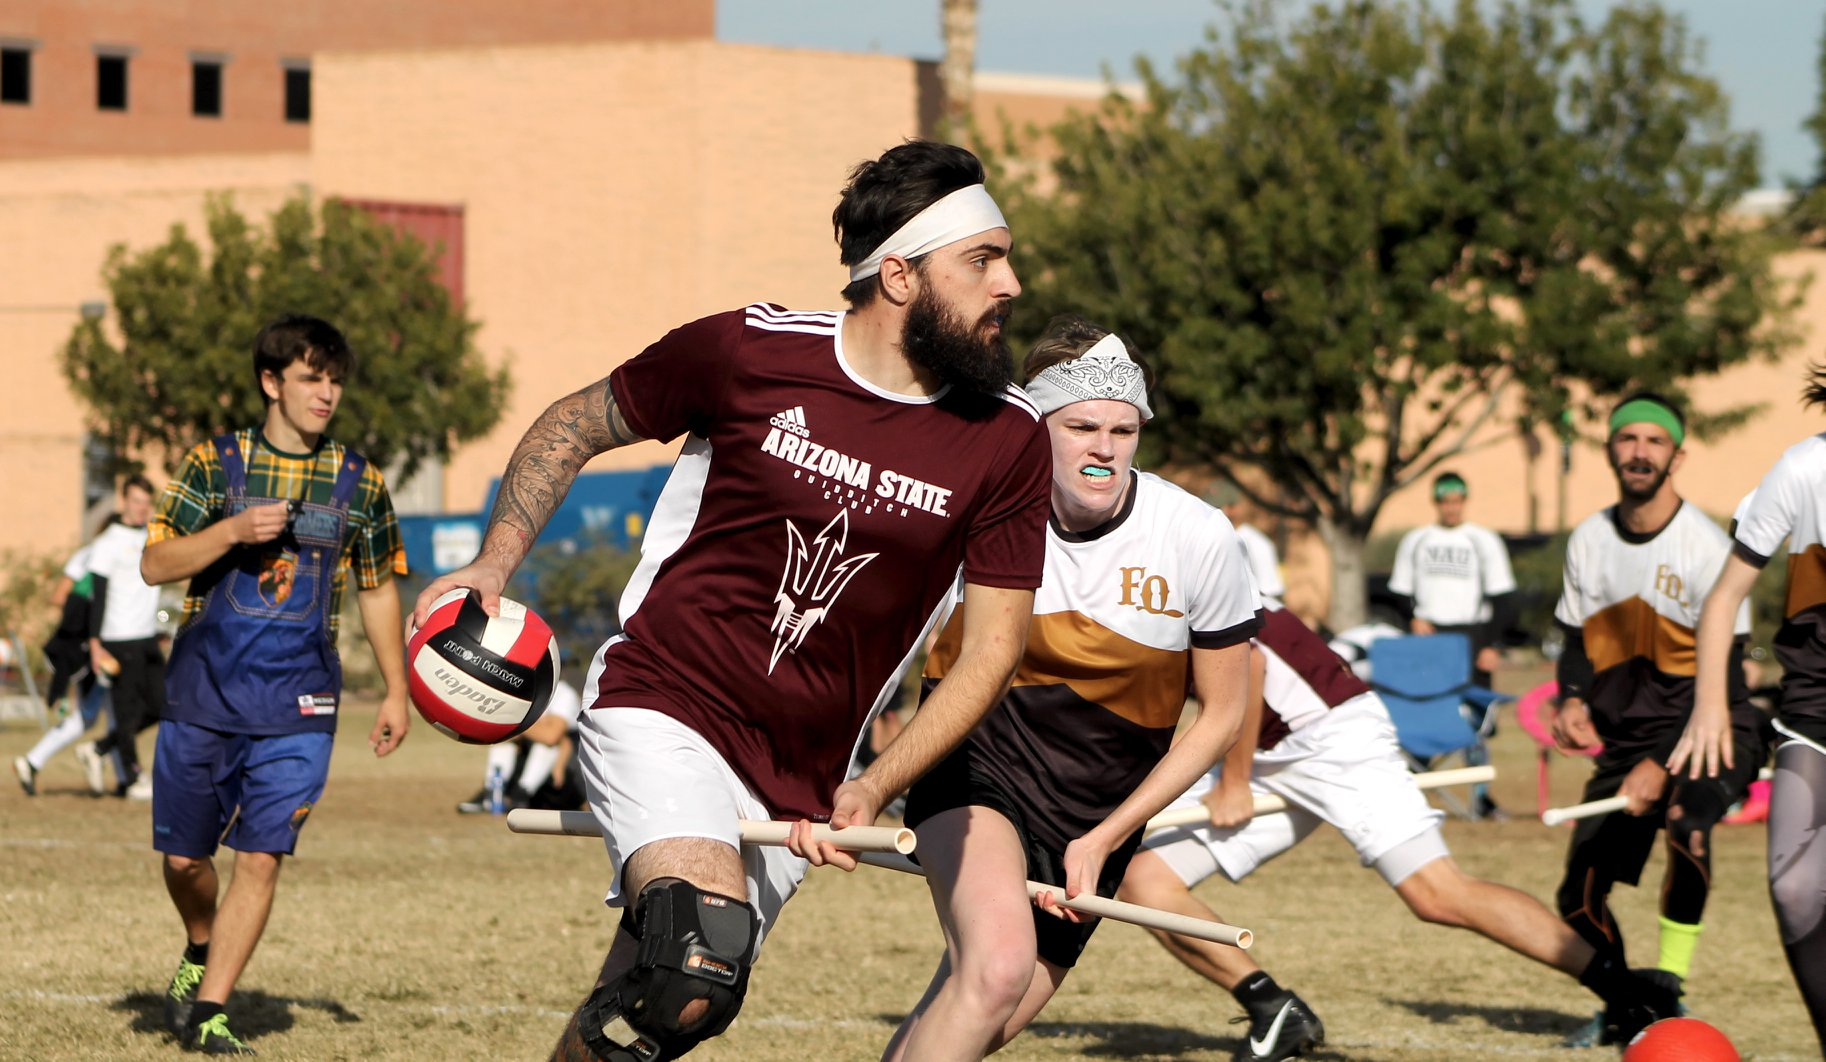 ASU quidditch chaser Angelo Papakonstantinou. Photo credit: Chris Rothery Photography.